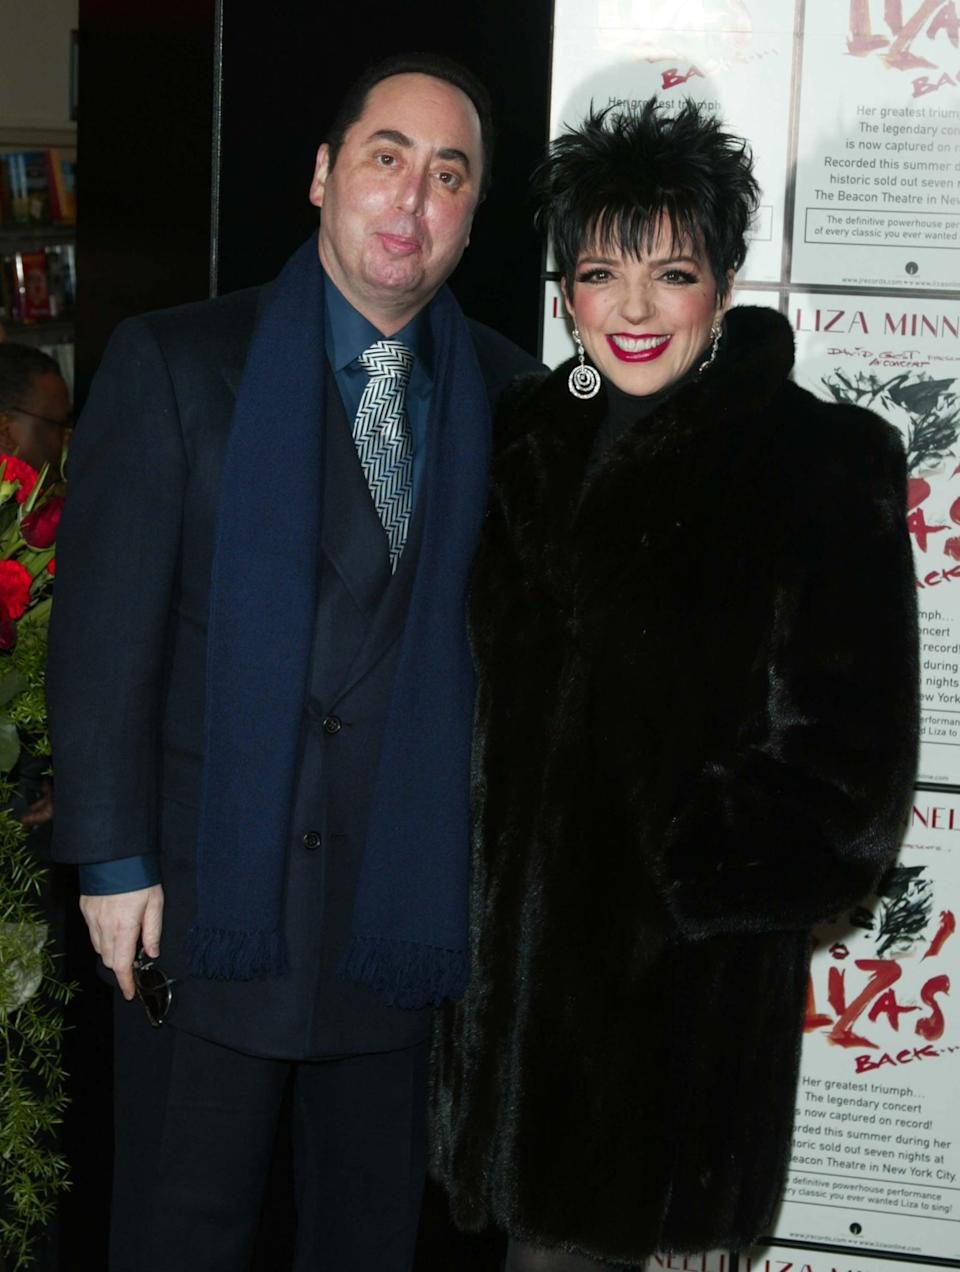 """<p>Minnelli's fourth husband, manager David Gest, <a href=""""https://www.vanityfair.com/news/2002/03/happyvalley200203"""" class=""""link rapid-noclick-resp"""" rel=""""nofollow noopener"""" target=""""_blank"""" data-ylk=""""slk:met her at a Michael Jackson tribute concert"""">met her at a Michael Jackson tribute concert</a>, and the pair decided to get married three months later. They were only married for 16 months, but their divorce wasn't finalized until 2007. Their breakup wasn't amicable - Gest sued Minnelli for $10 million for physical abuse, and Minnelli countersued him for $2 million after saying he pocketed her money. In 2007, they agreed to a <a href=""""https://www.washingtonpost.com/news/morning-mix/wp/2016/04/13/david-gest-and-liza-minnelli-were-only-married-for-16-months-heres-why/"""" class=""""link rapid-noclick-resp"""" rel=""""nofollow noopener"""" target=""""_blank"""" data-ylk=""""slk:no-fault divorce"""">no-fault divorce</a>. Gest <a href=""""http://www.bbc.com/news/entertainment-arts-36028232"""" class=""""link rapid-noclick-resp"""" rel=""""nofollow noopener"""" target=""""_blank"""" data-ylk=""""slk:passed away in 2016"""">passed away in 2016</a>. </p>"""